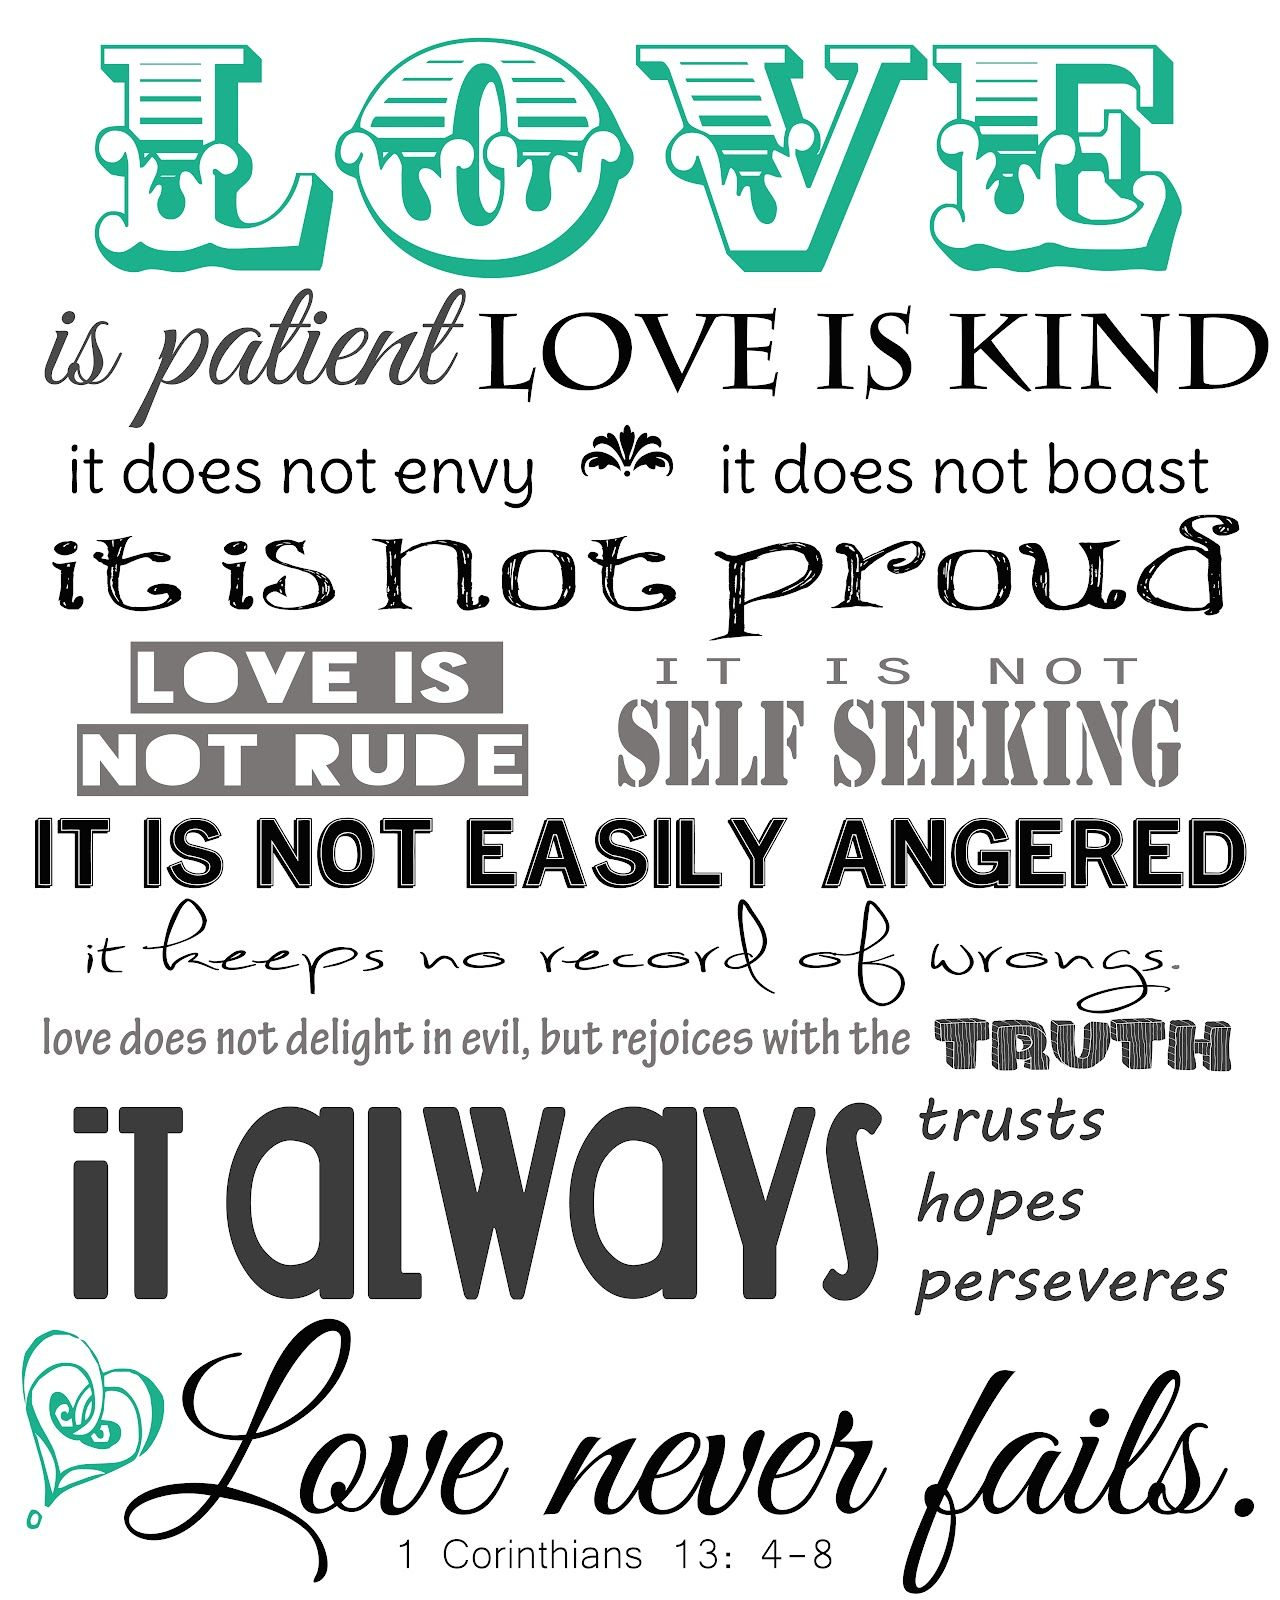 Genial 1 CORINTHIANS 13 LOVE IS PATIENT LOVE IS Image Galleries   ImageKB.com